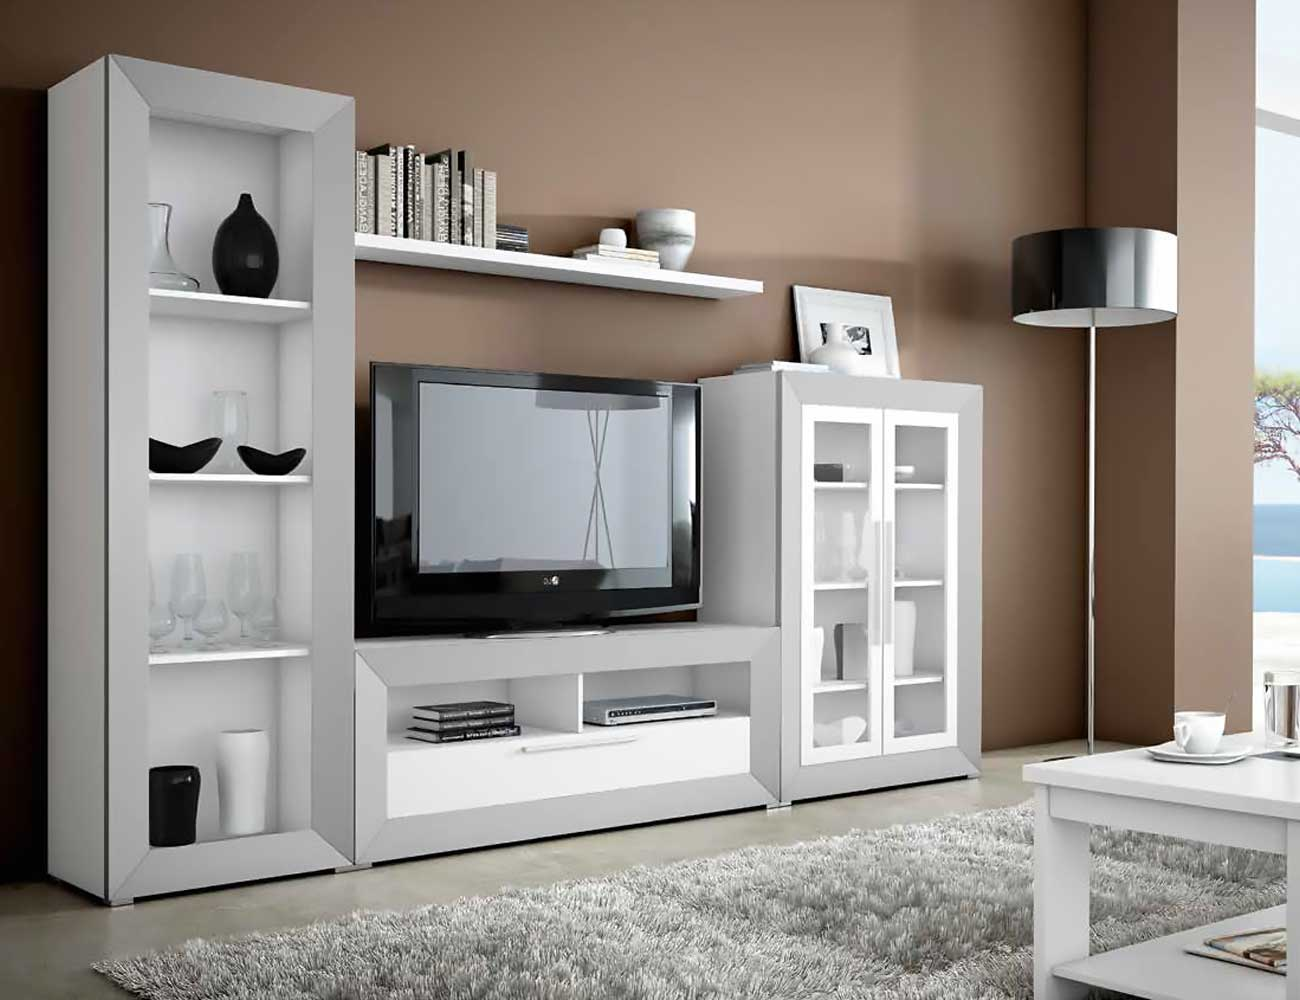 Mueble de sal n moderno en blanco con plata 2433 for Muebles de salon color blanco